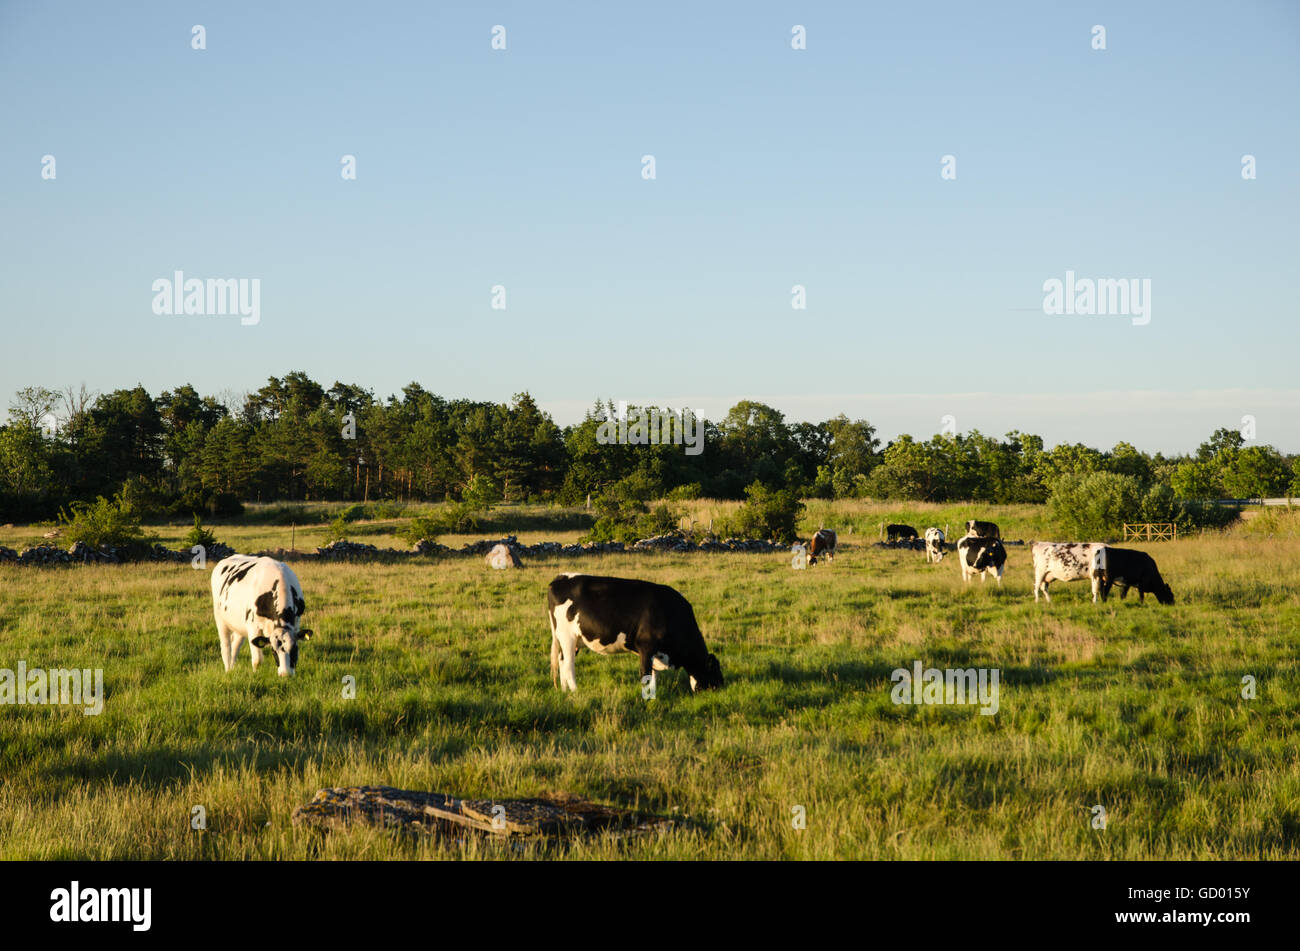 Grazing herd of cattle in a green pastureland in the late evening sunshine - Stock Image